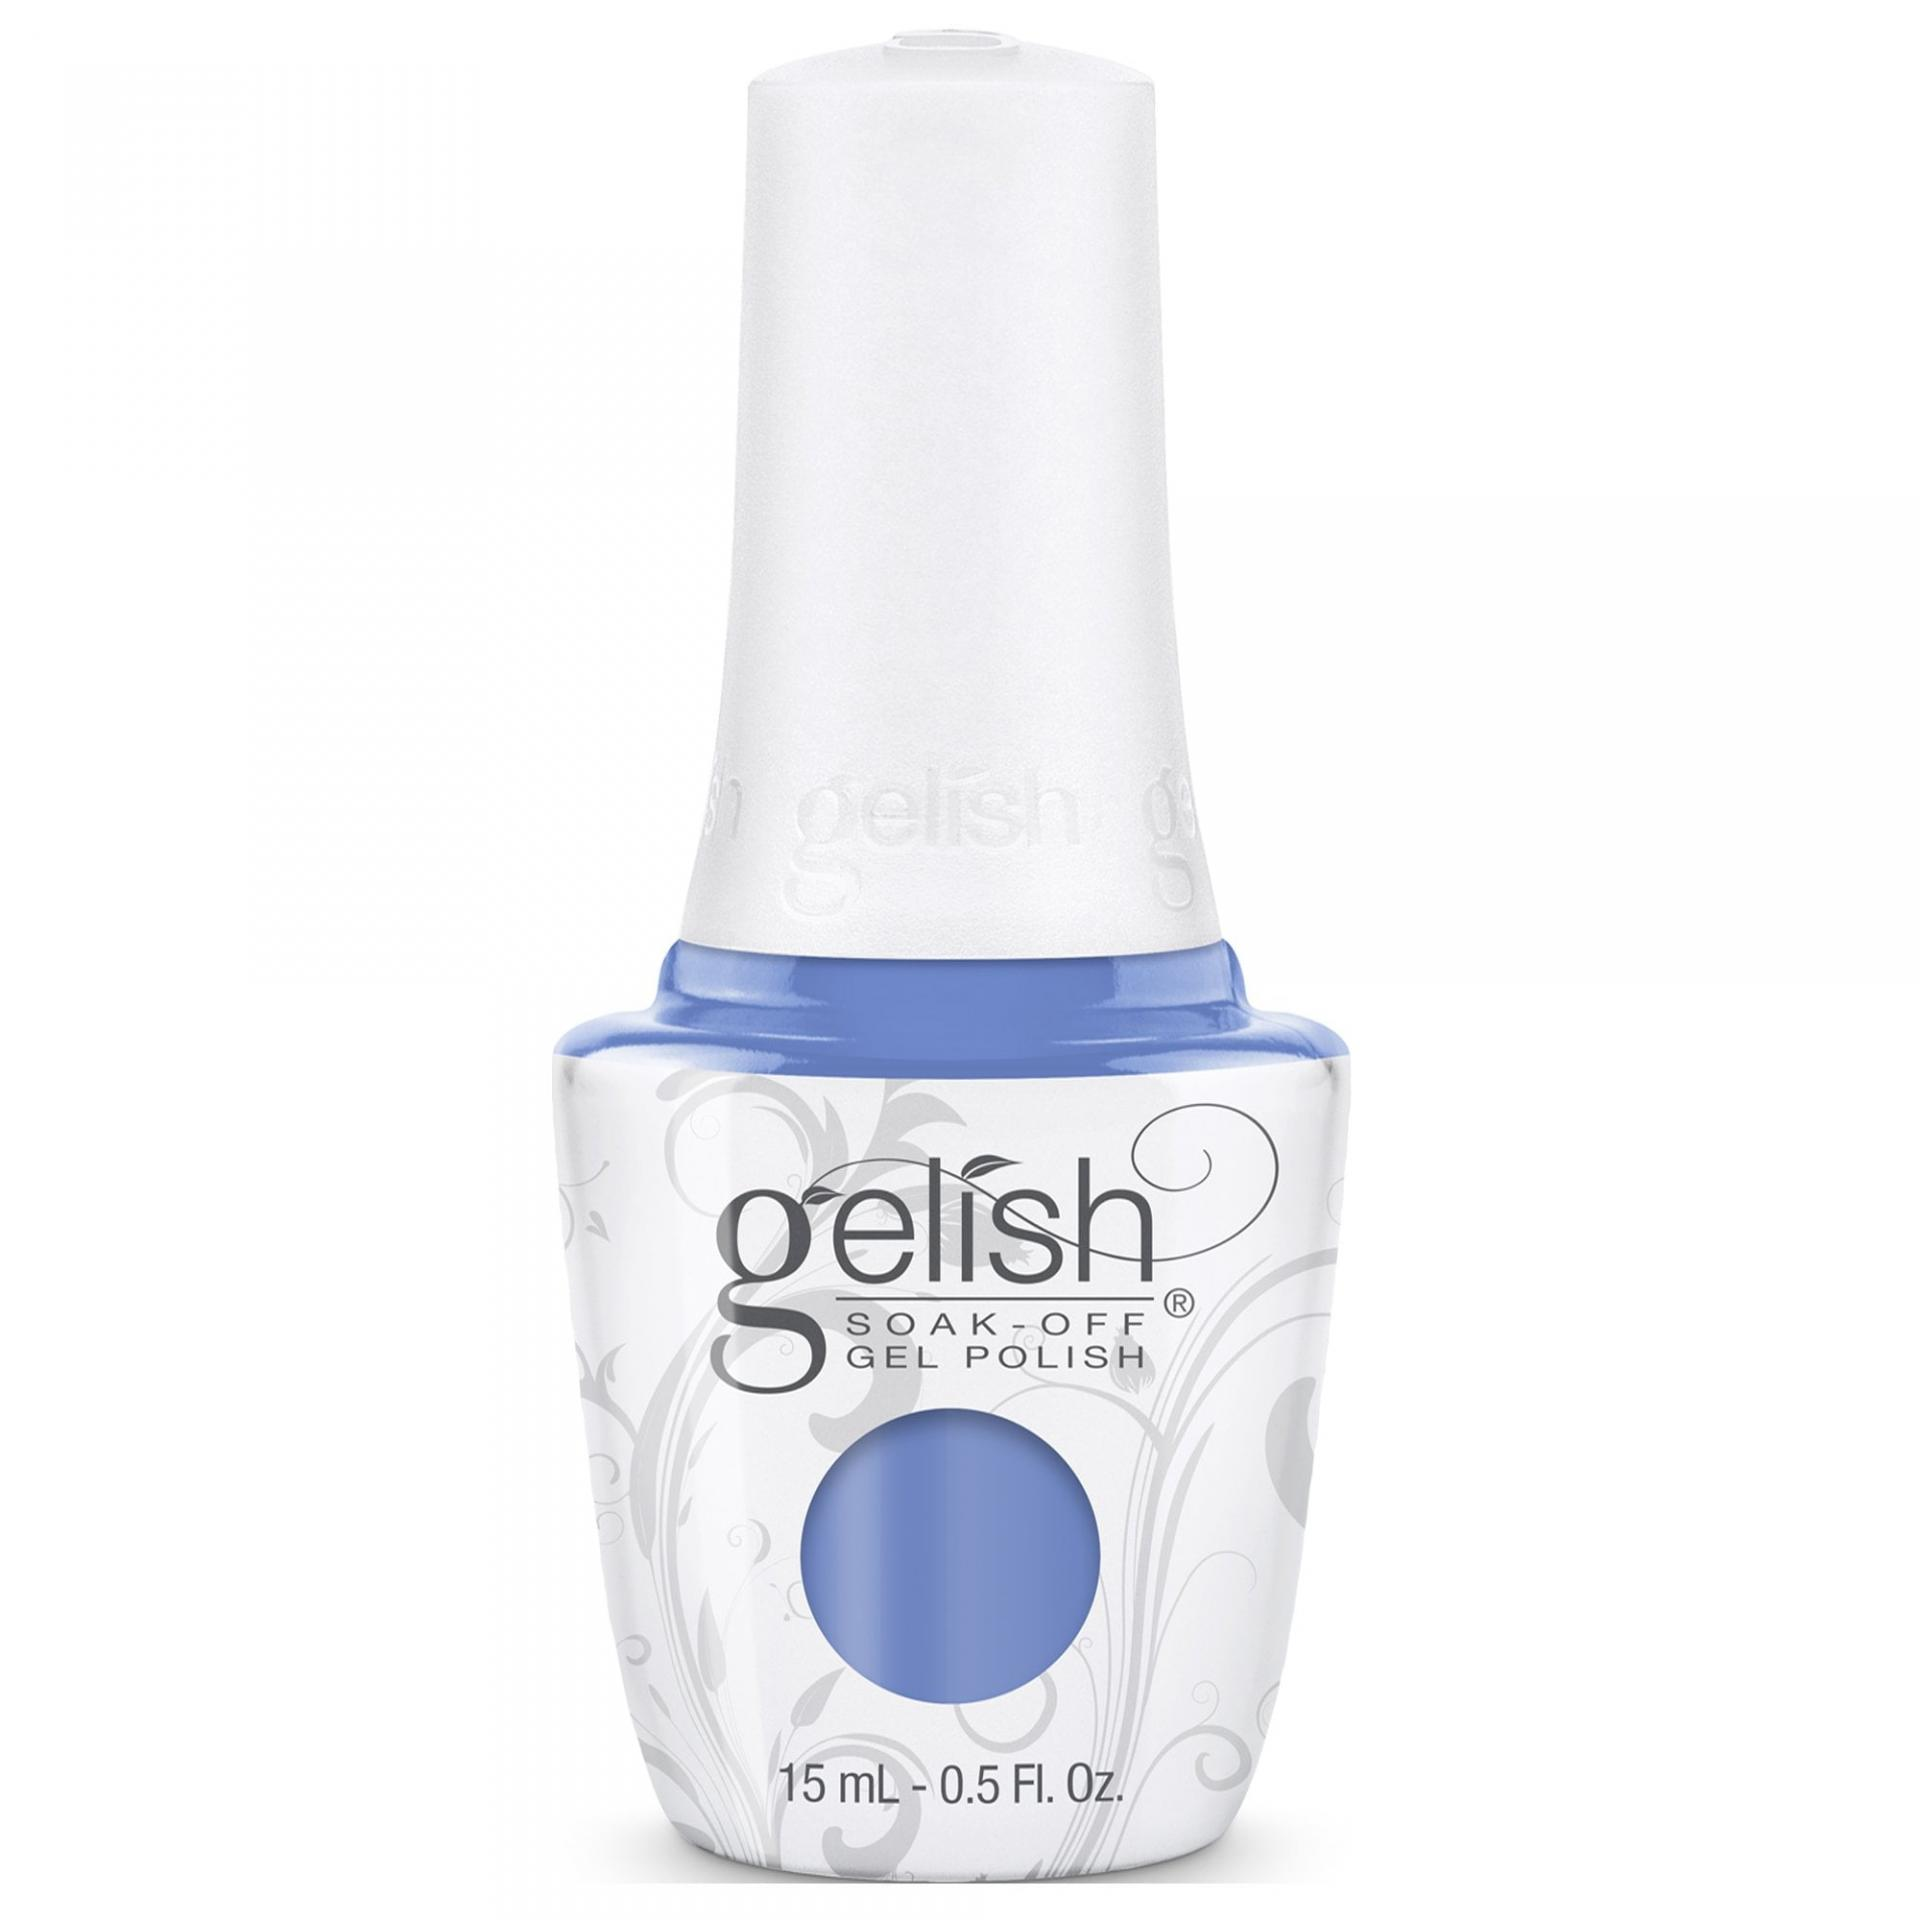 Gelish forever fabulous 2018 gel polish collection blue eyed beauty 15ml 1110330 p25748 100374 zoom